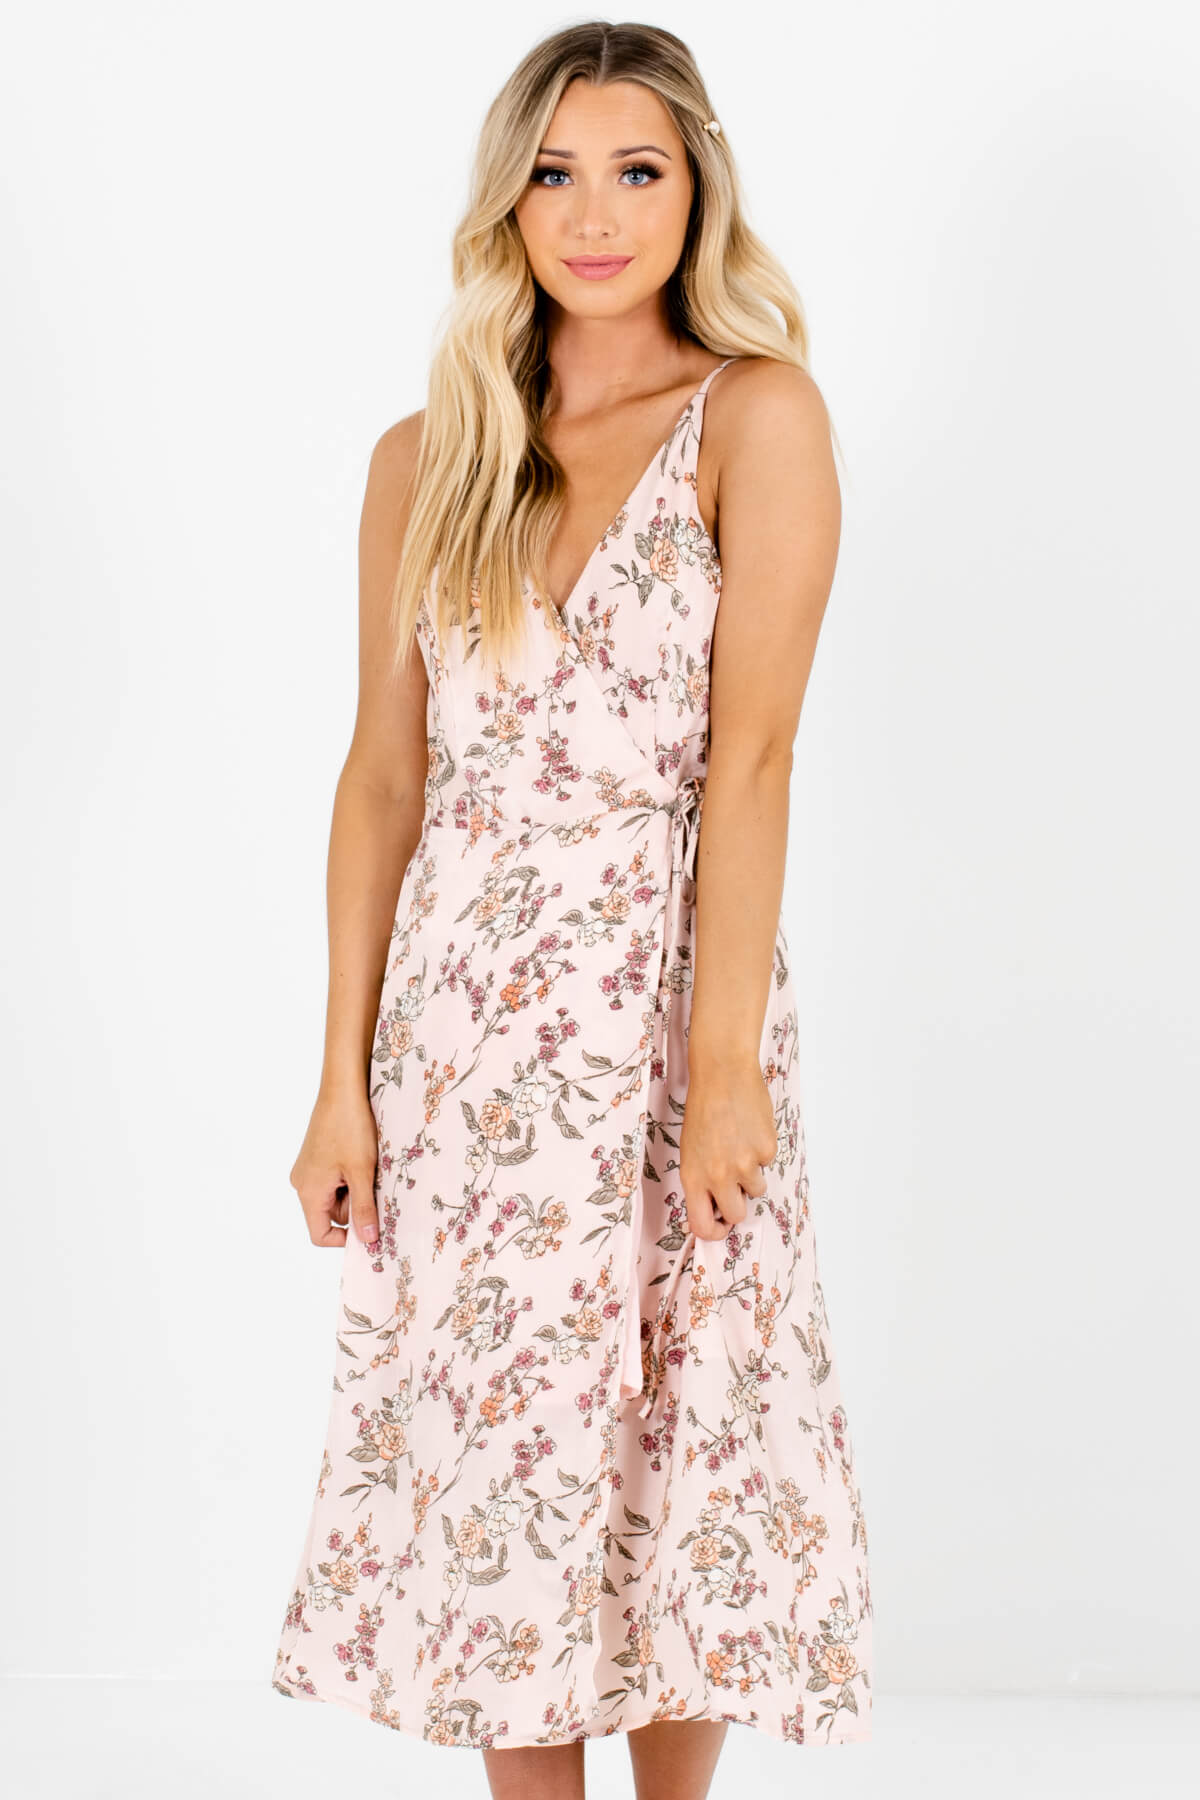 Pink Silky Floral Wrap Midi Dresses Affordable Online Boutique